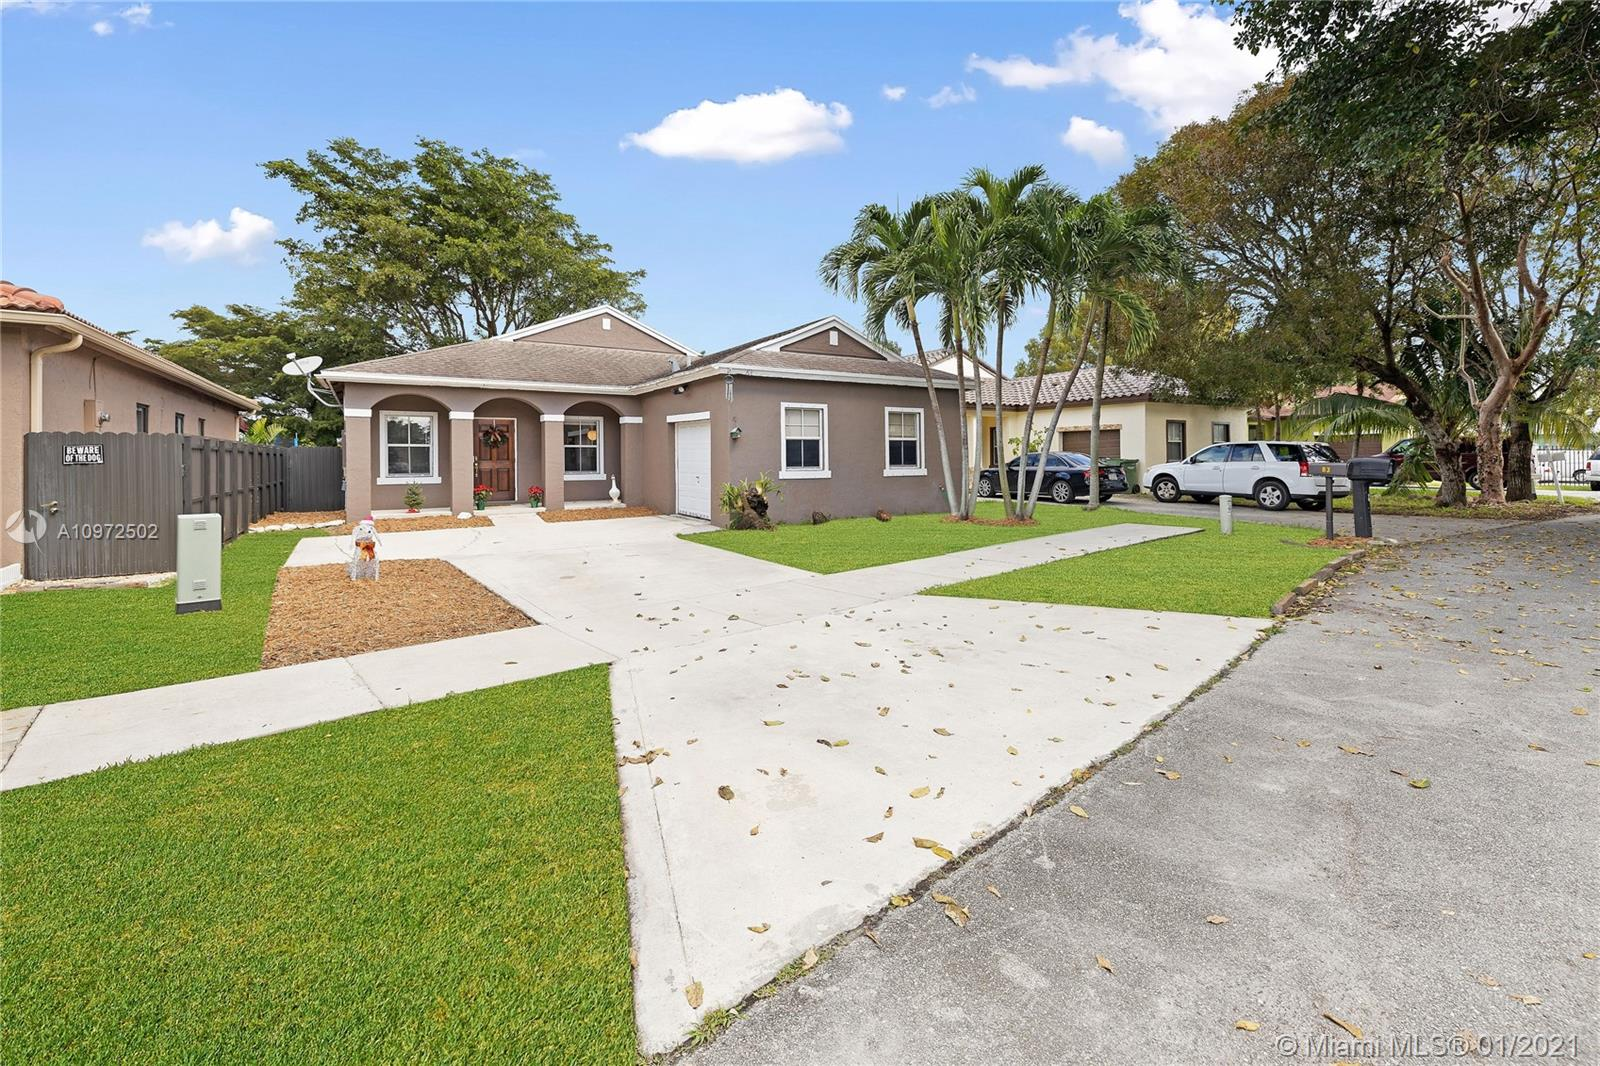 83 NW 4 PL Property Photo - Homestead, FL real estate listing